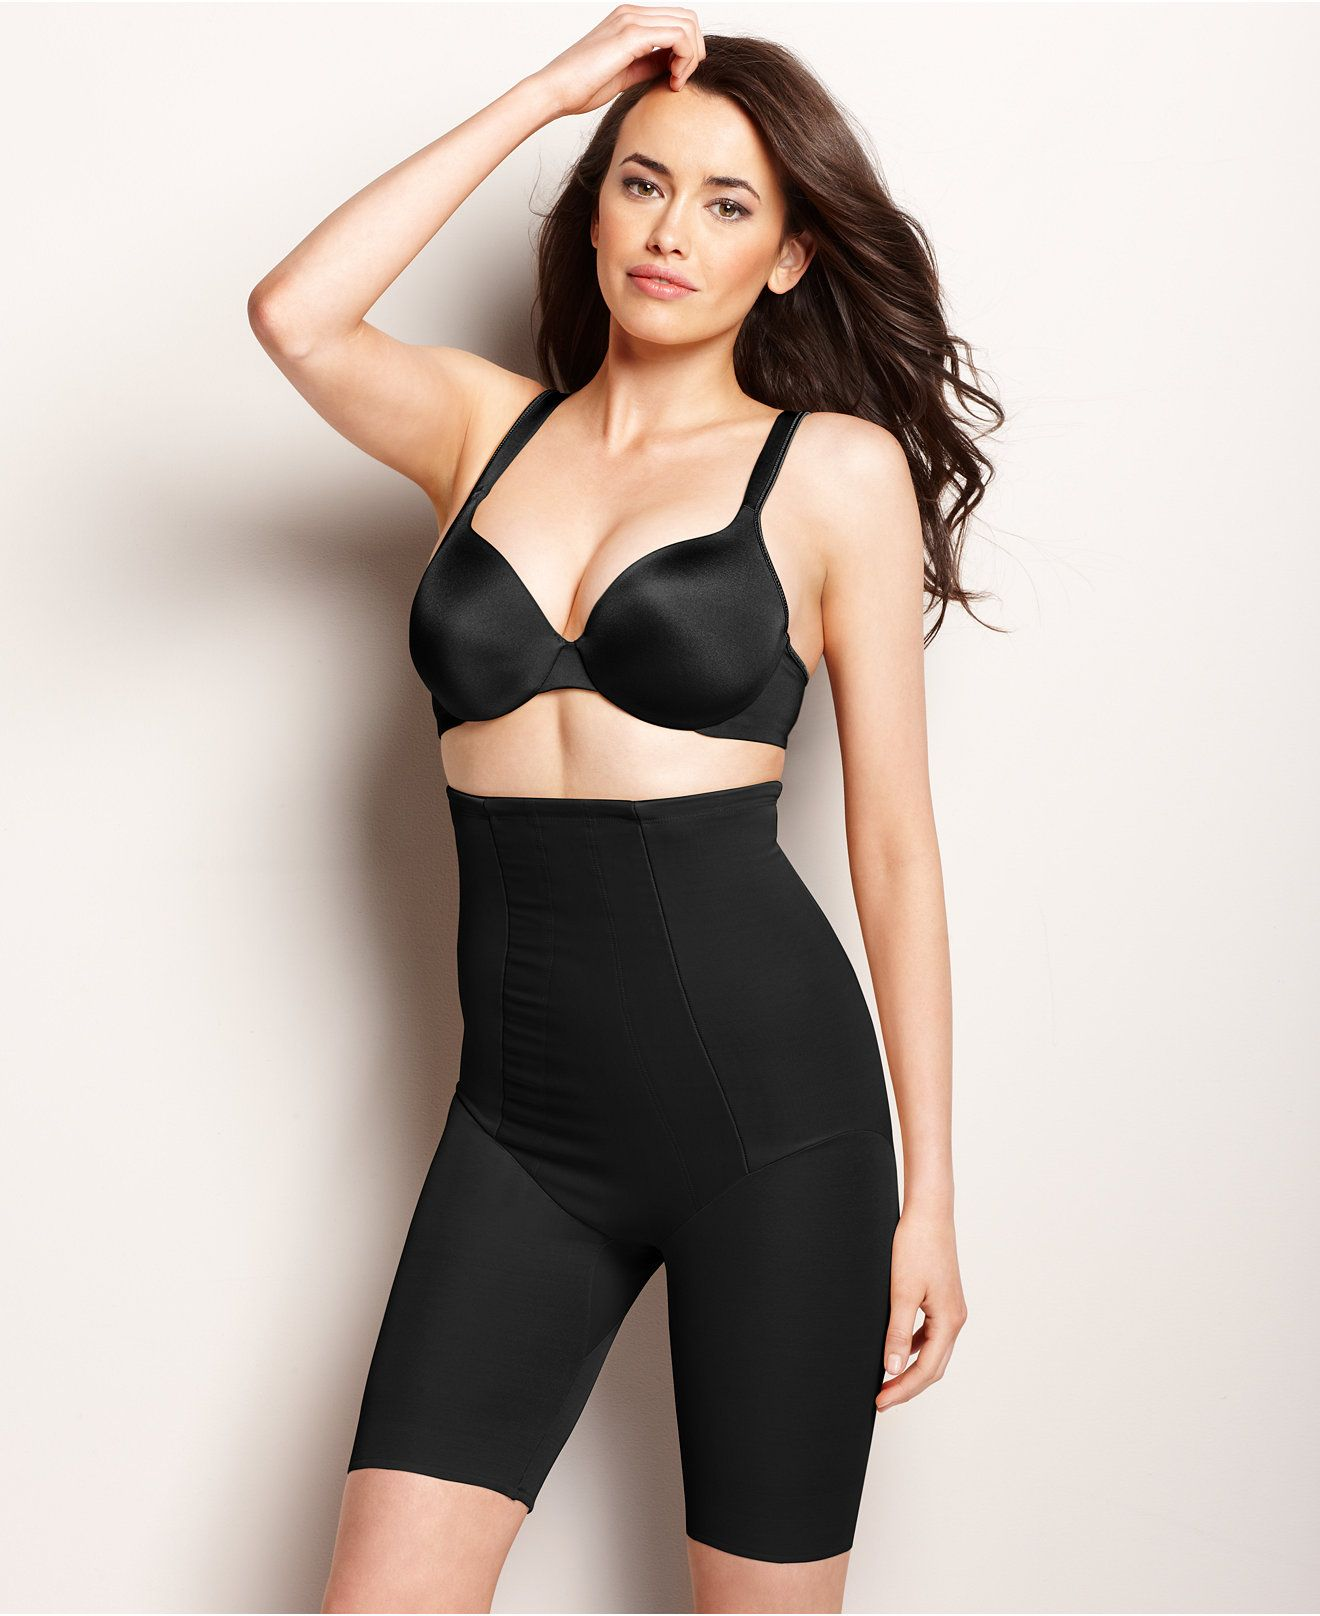 7e1b13800579 Miraclesuit Extra Firm Control Shape with an Edge High Waist Thigh Slimmer  2709 - Bras, Panties & Shapewear - Women - Macy's